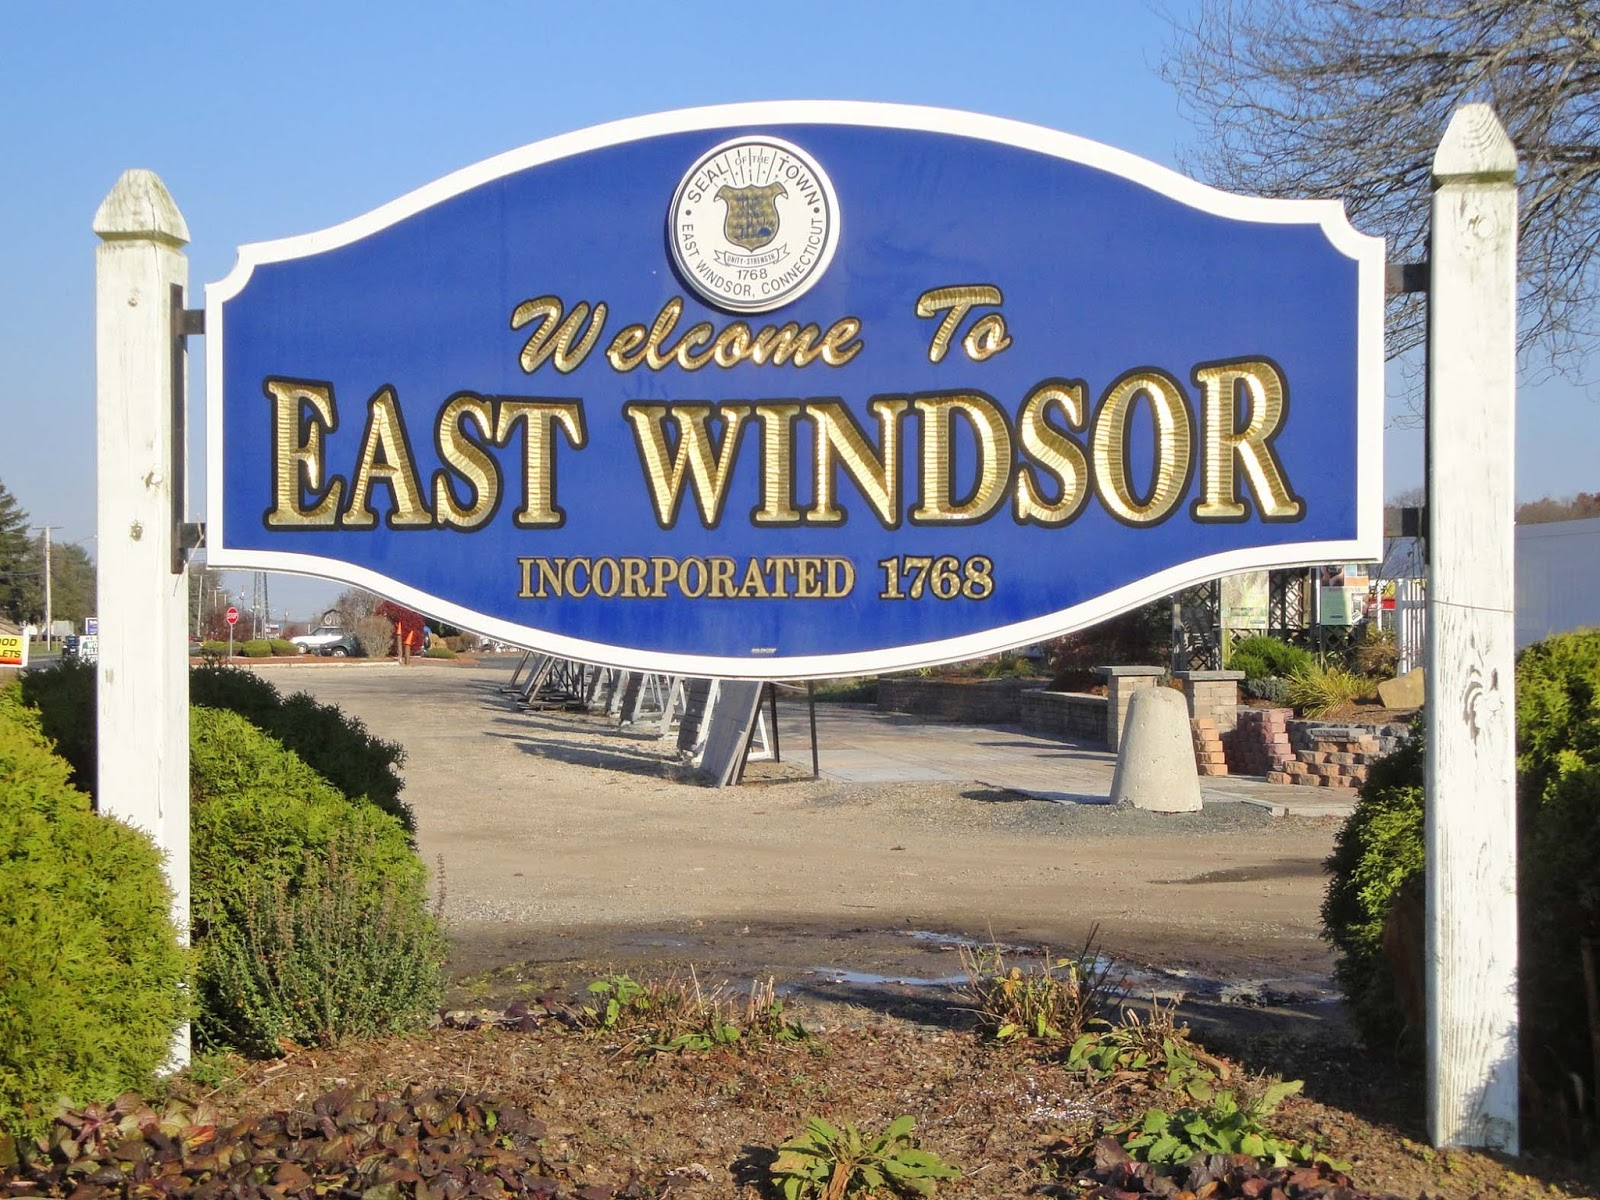 Dating from windsor to usa